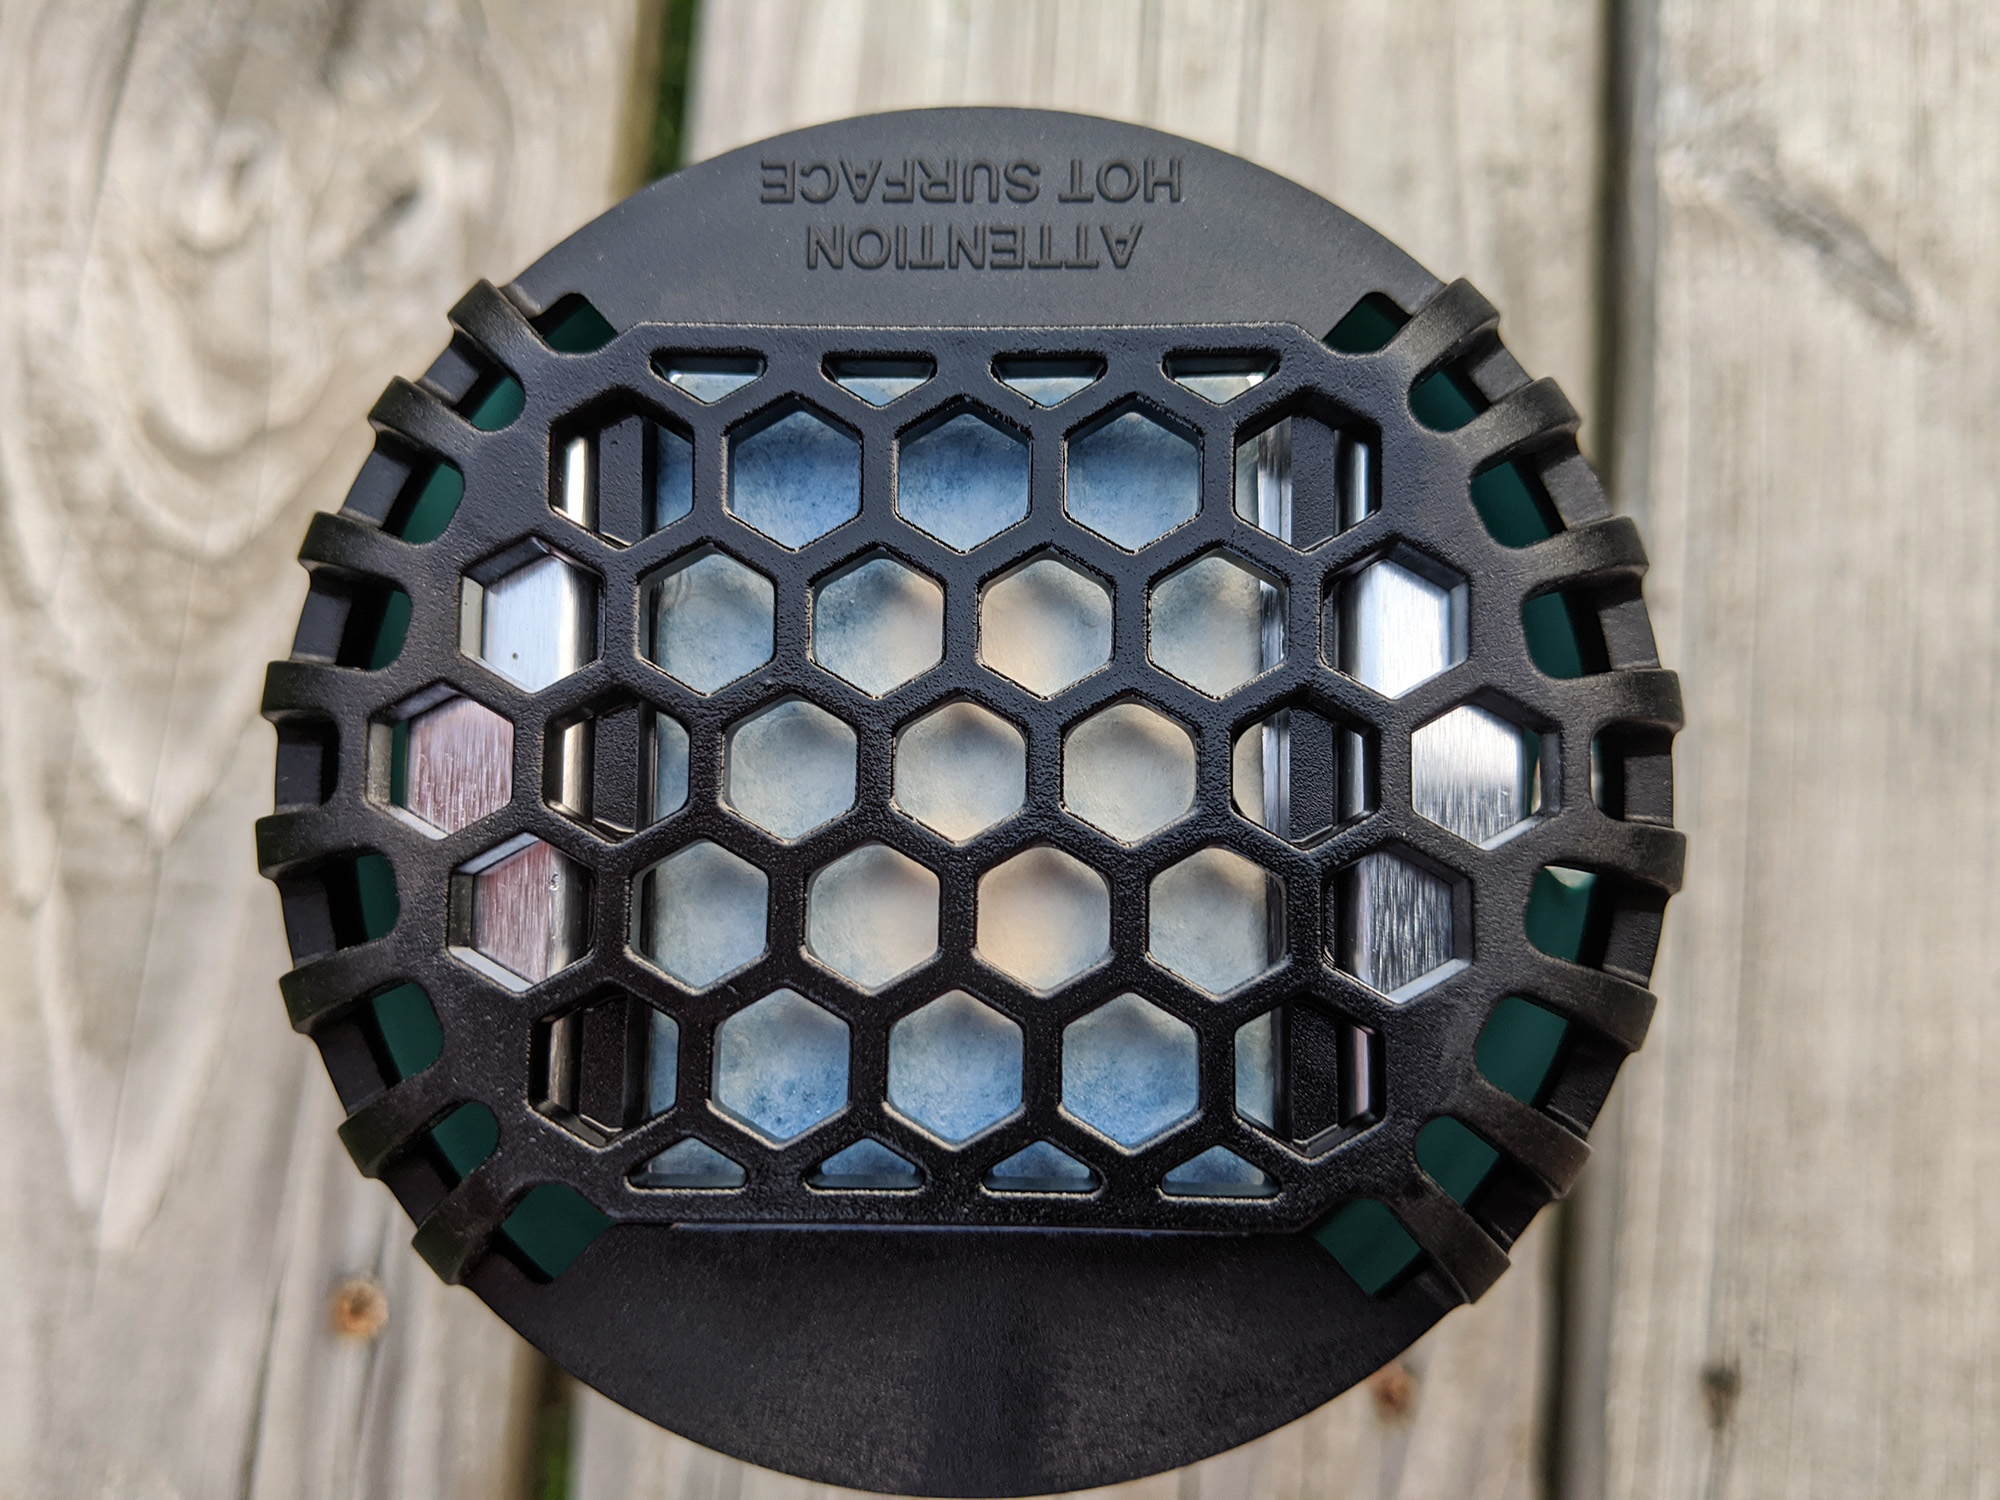 thermacell mosquito repellent mat two hours